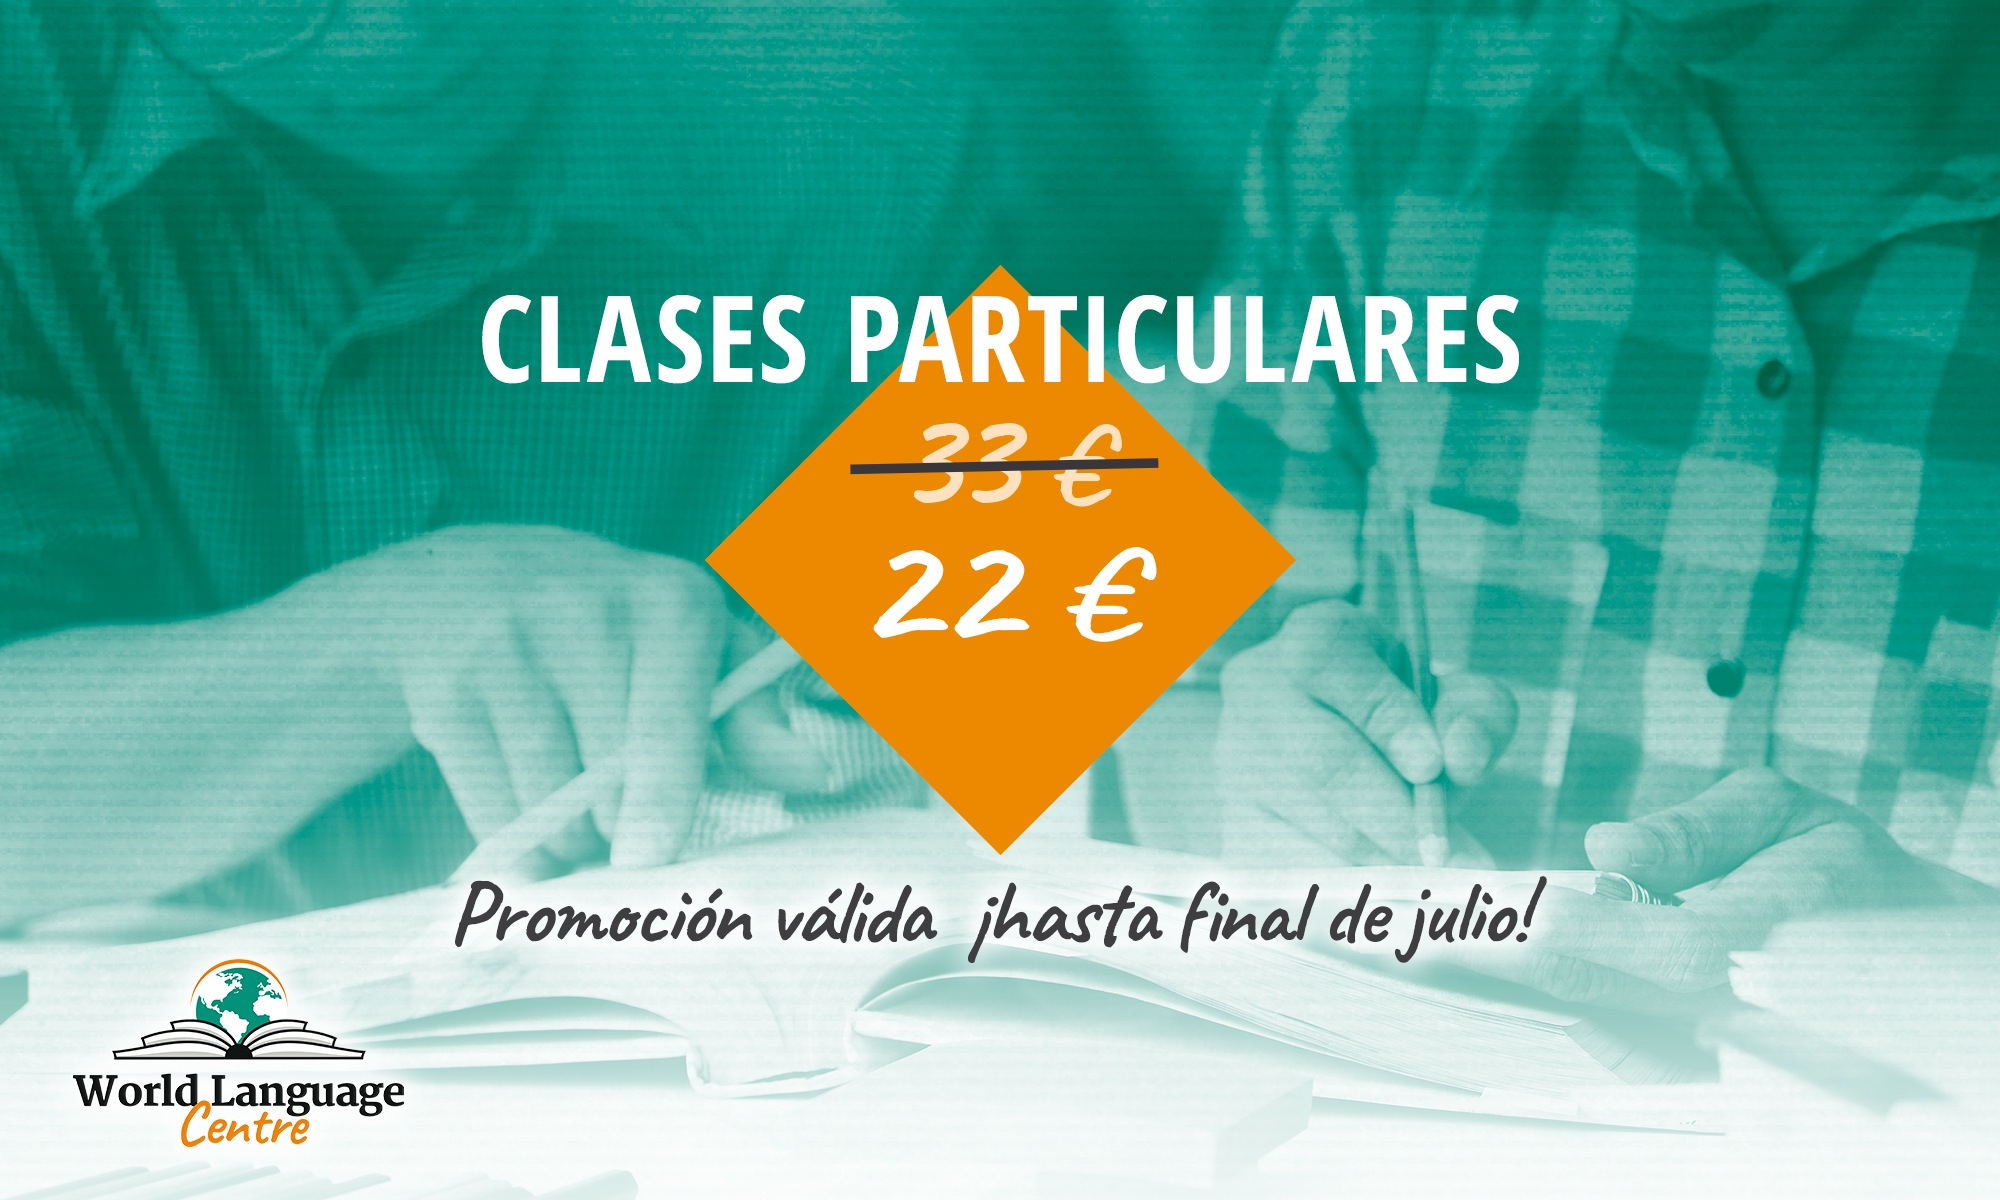 World Language Centre - Clases particulares